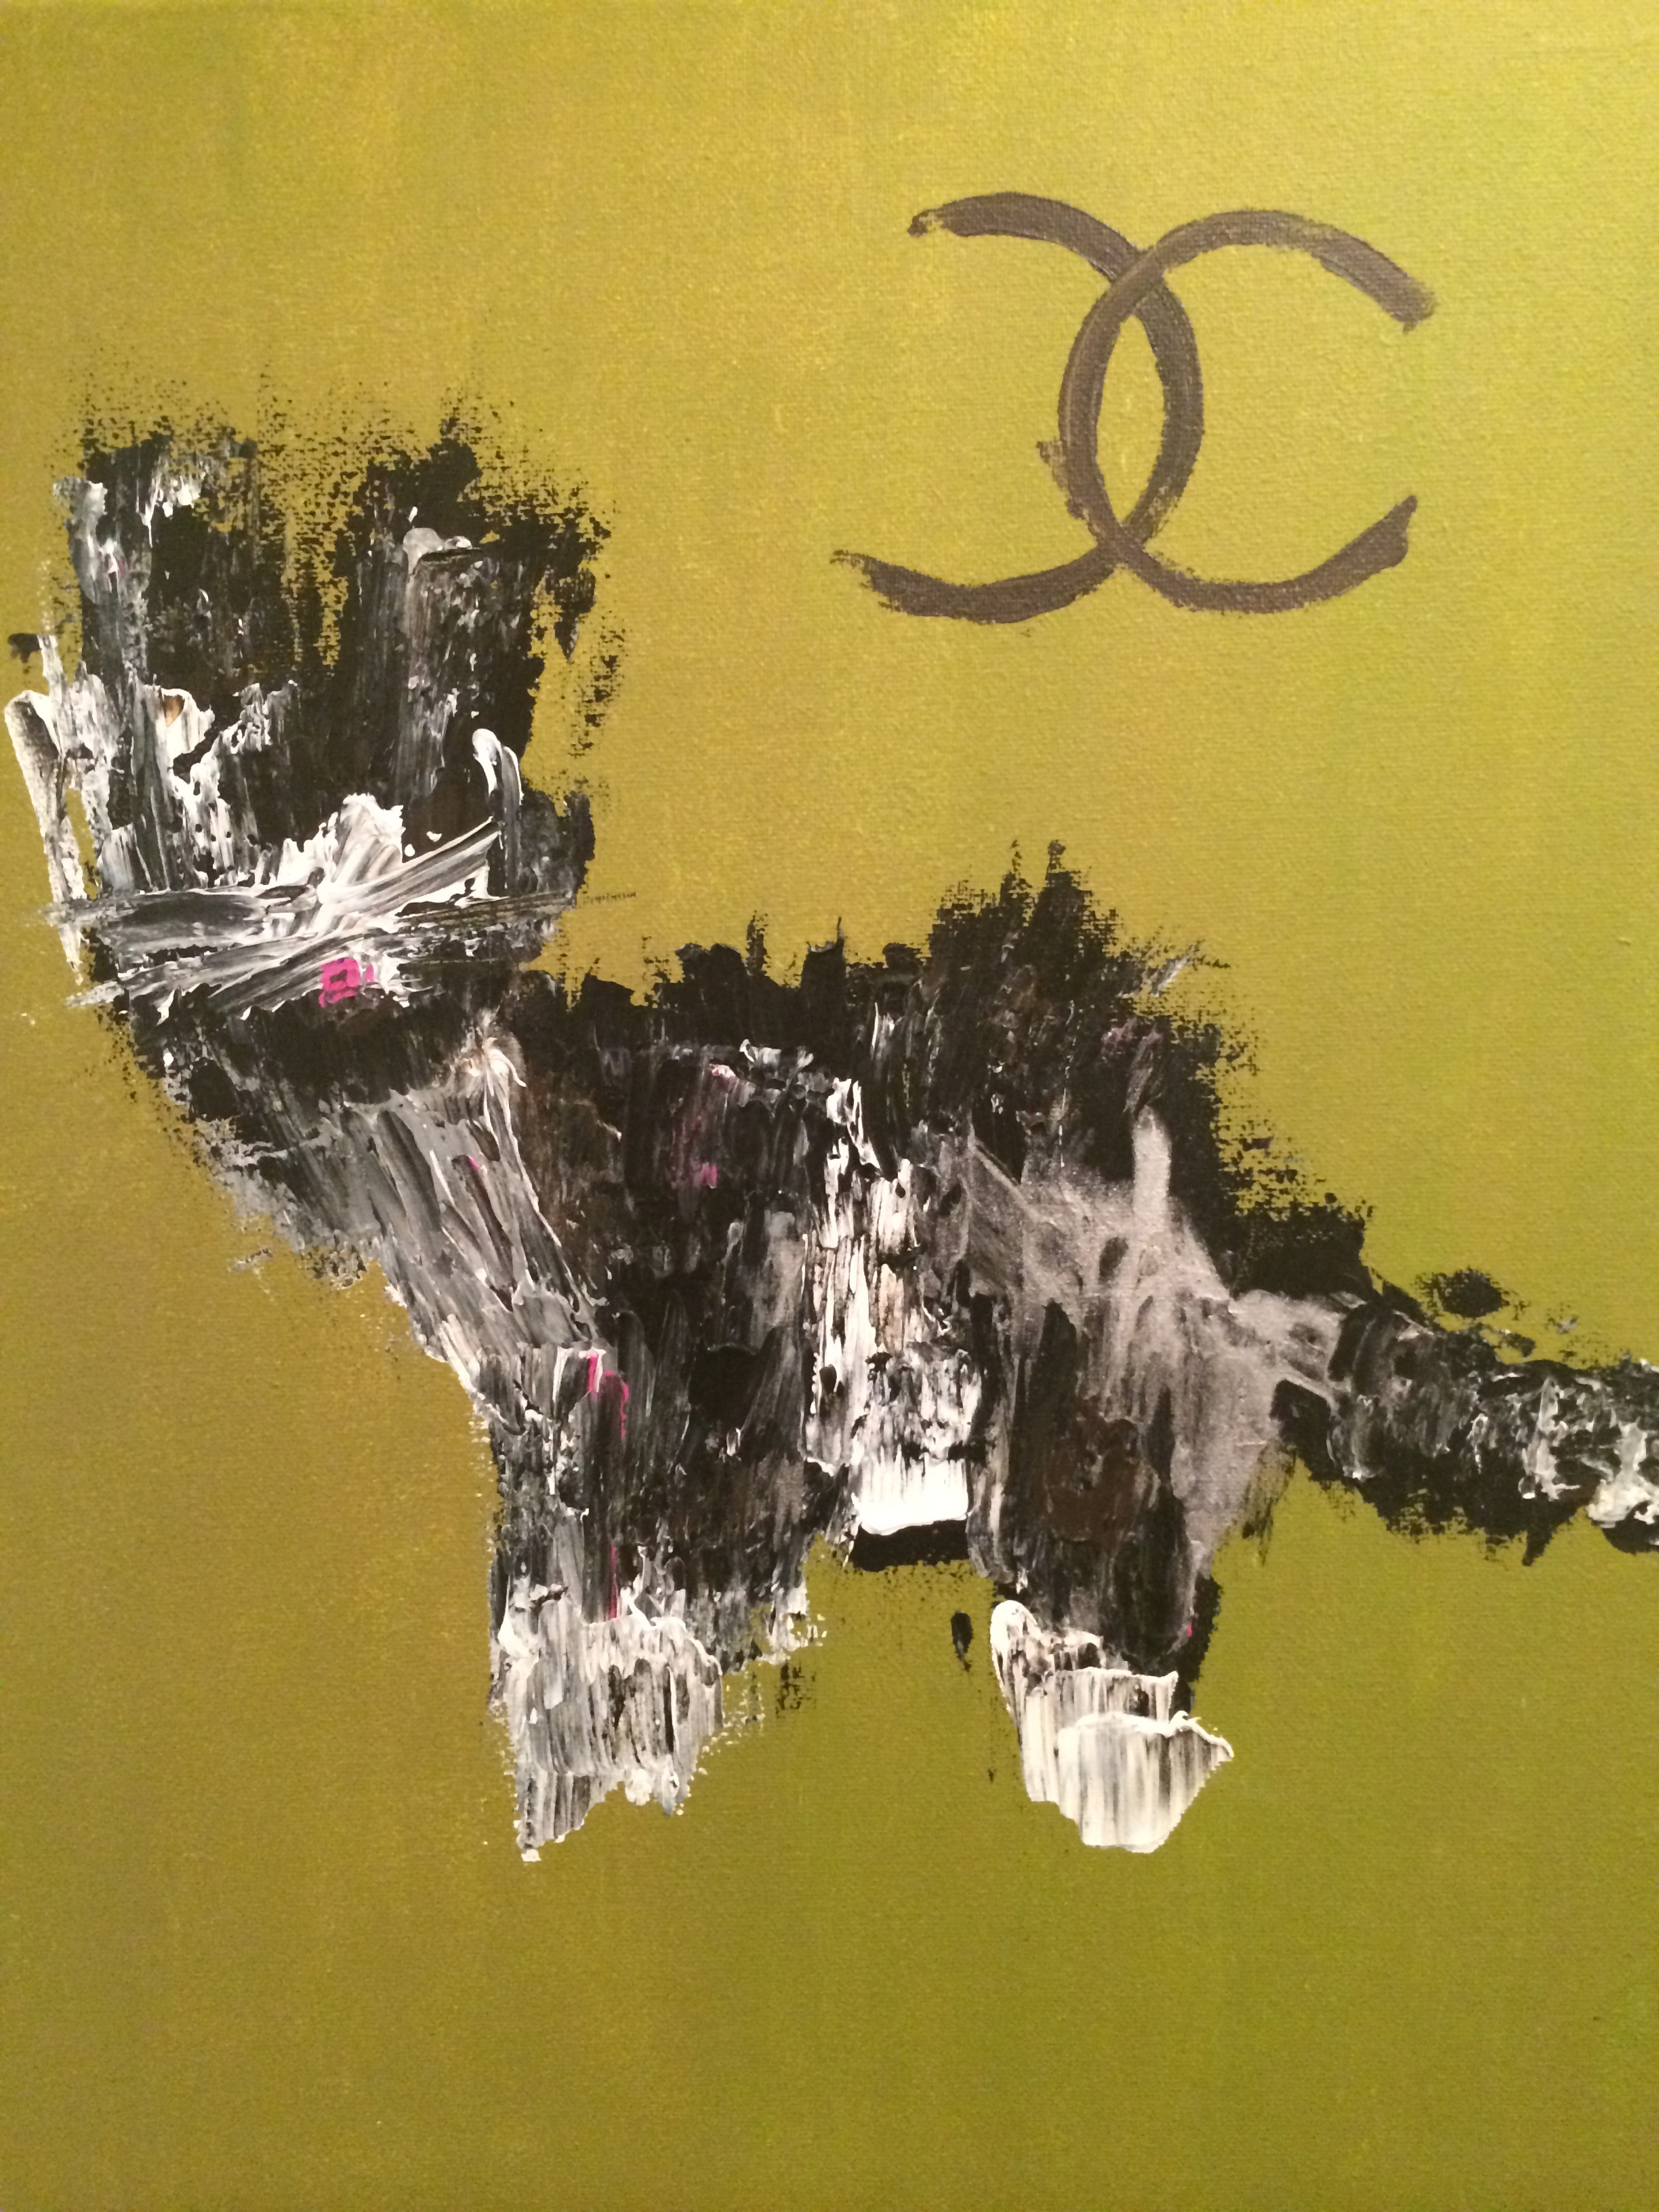 CHANEL  Princess Chanel. So trendy. So friendly.   Acrylic and latex on canvas.  Sponges, spatulas and a paintbrush. (2012)